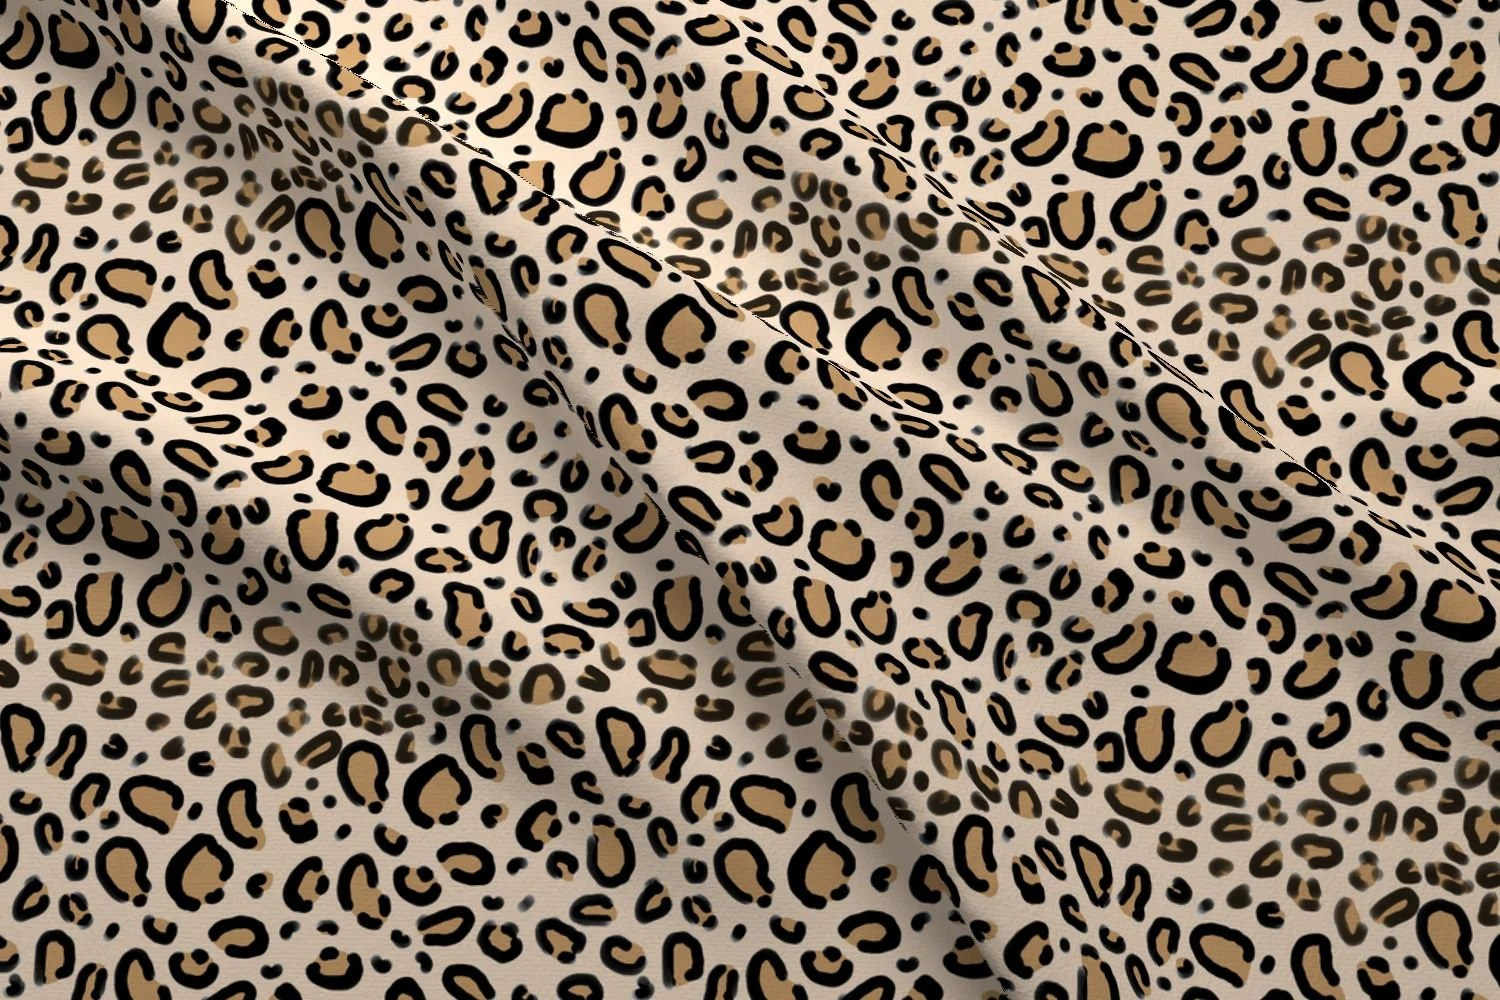 Luipaard Print Interieur Animal Print Fabric Leopard Print Tan Natural Cheetah Safari Print By Charlotte Winter Cotton Fabric By The Yard With Spoonflower